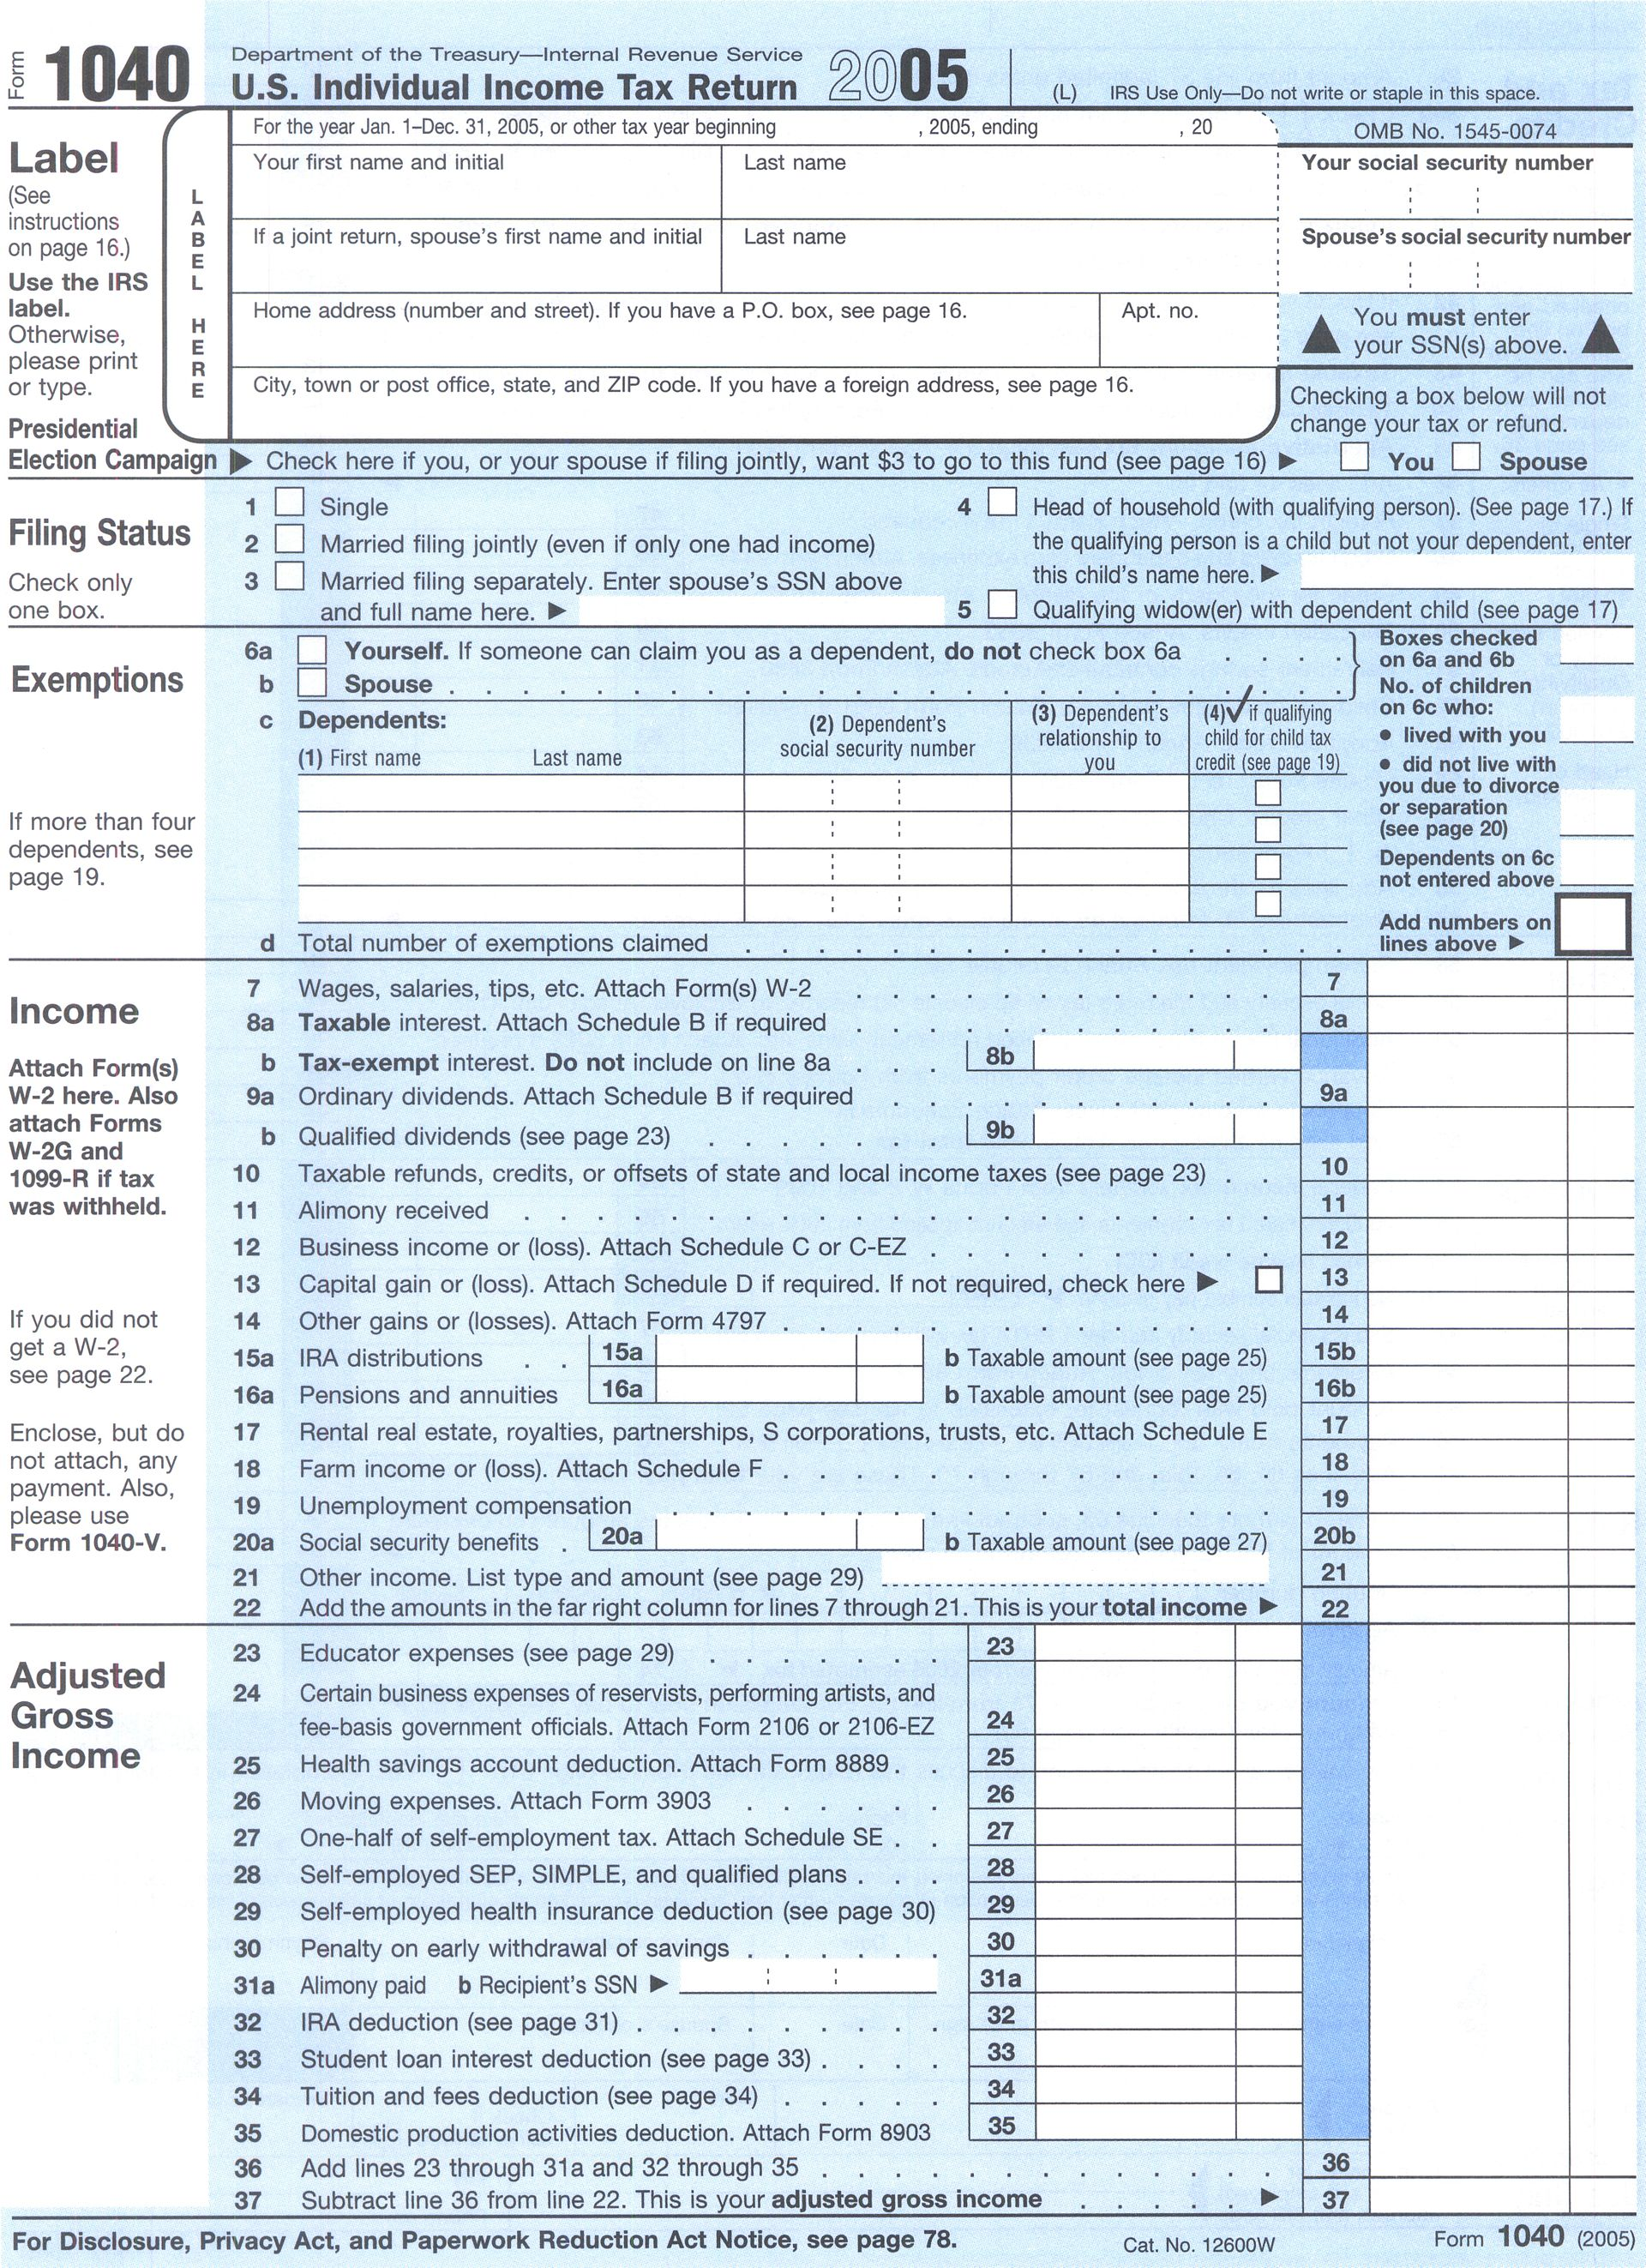 how to get tax return statement